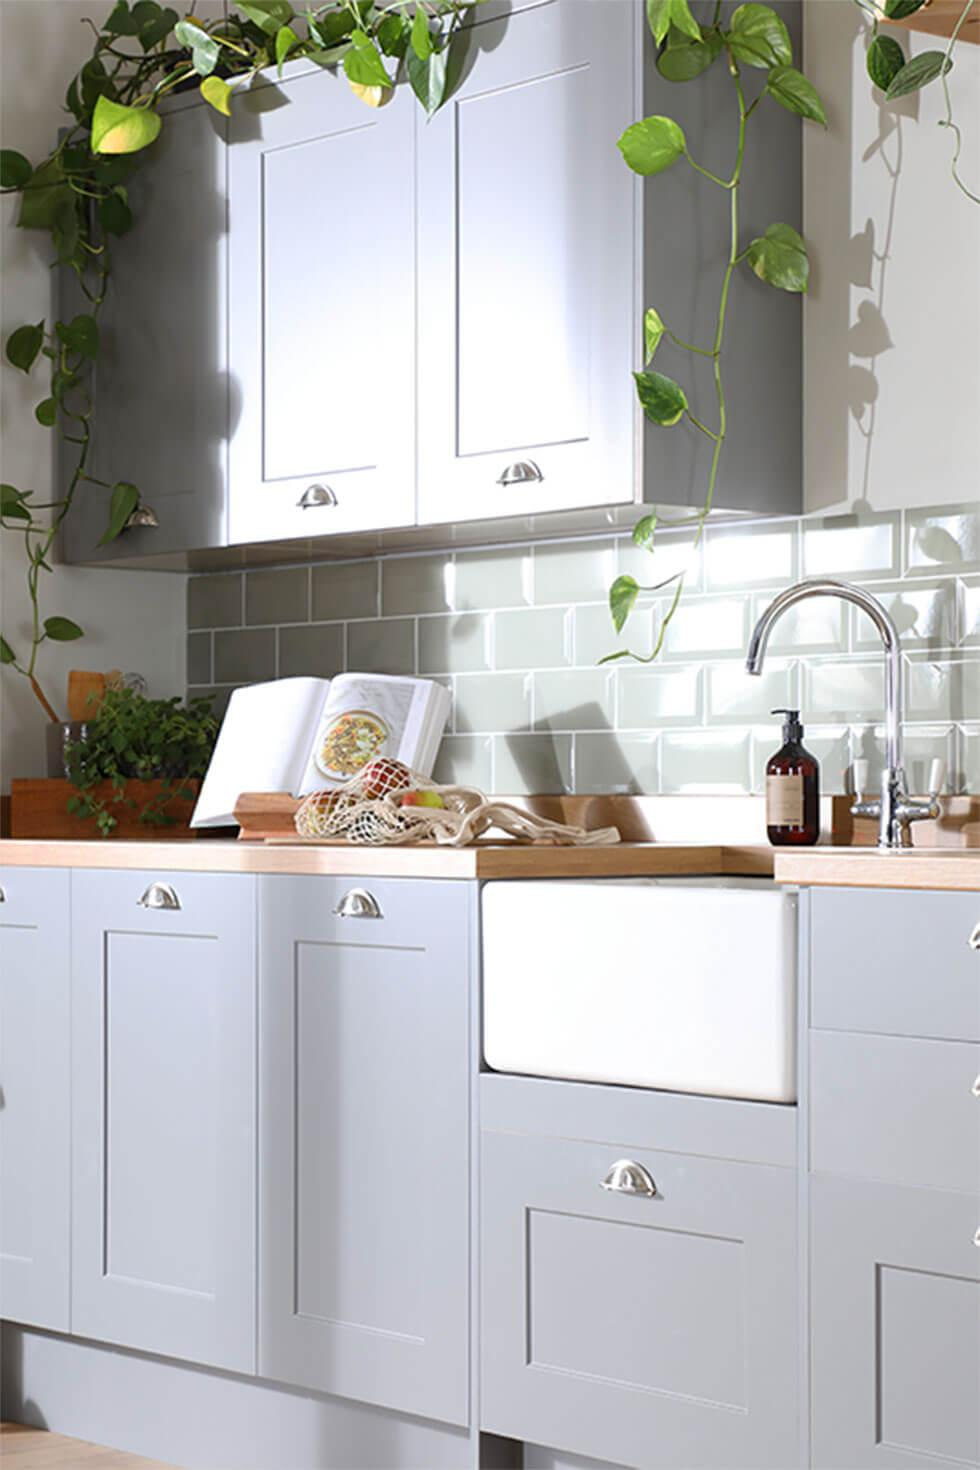 Trailing plants in a light grey kitchen in an eco-friendly home